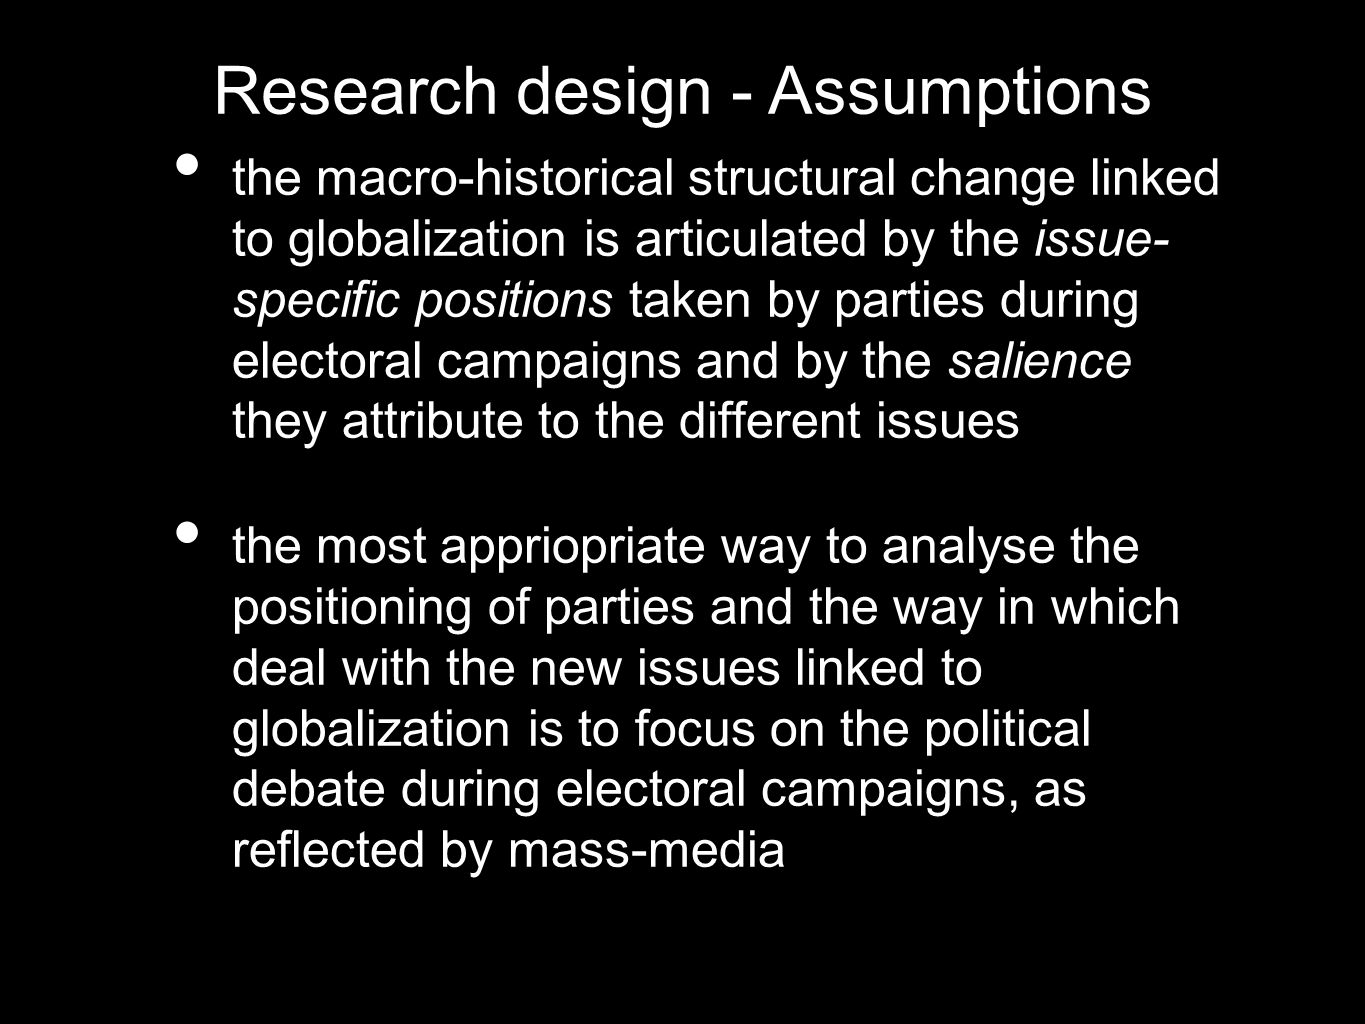 Research design - Assumptions